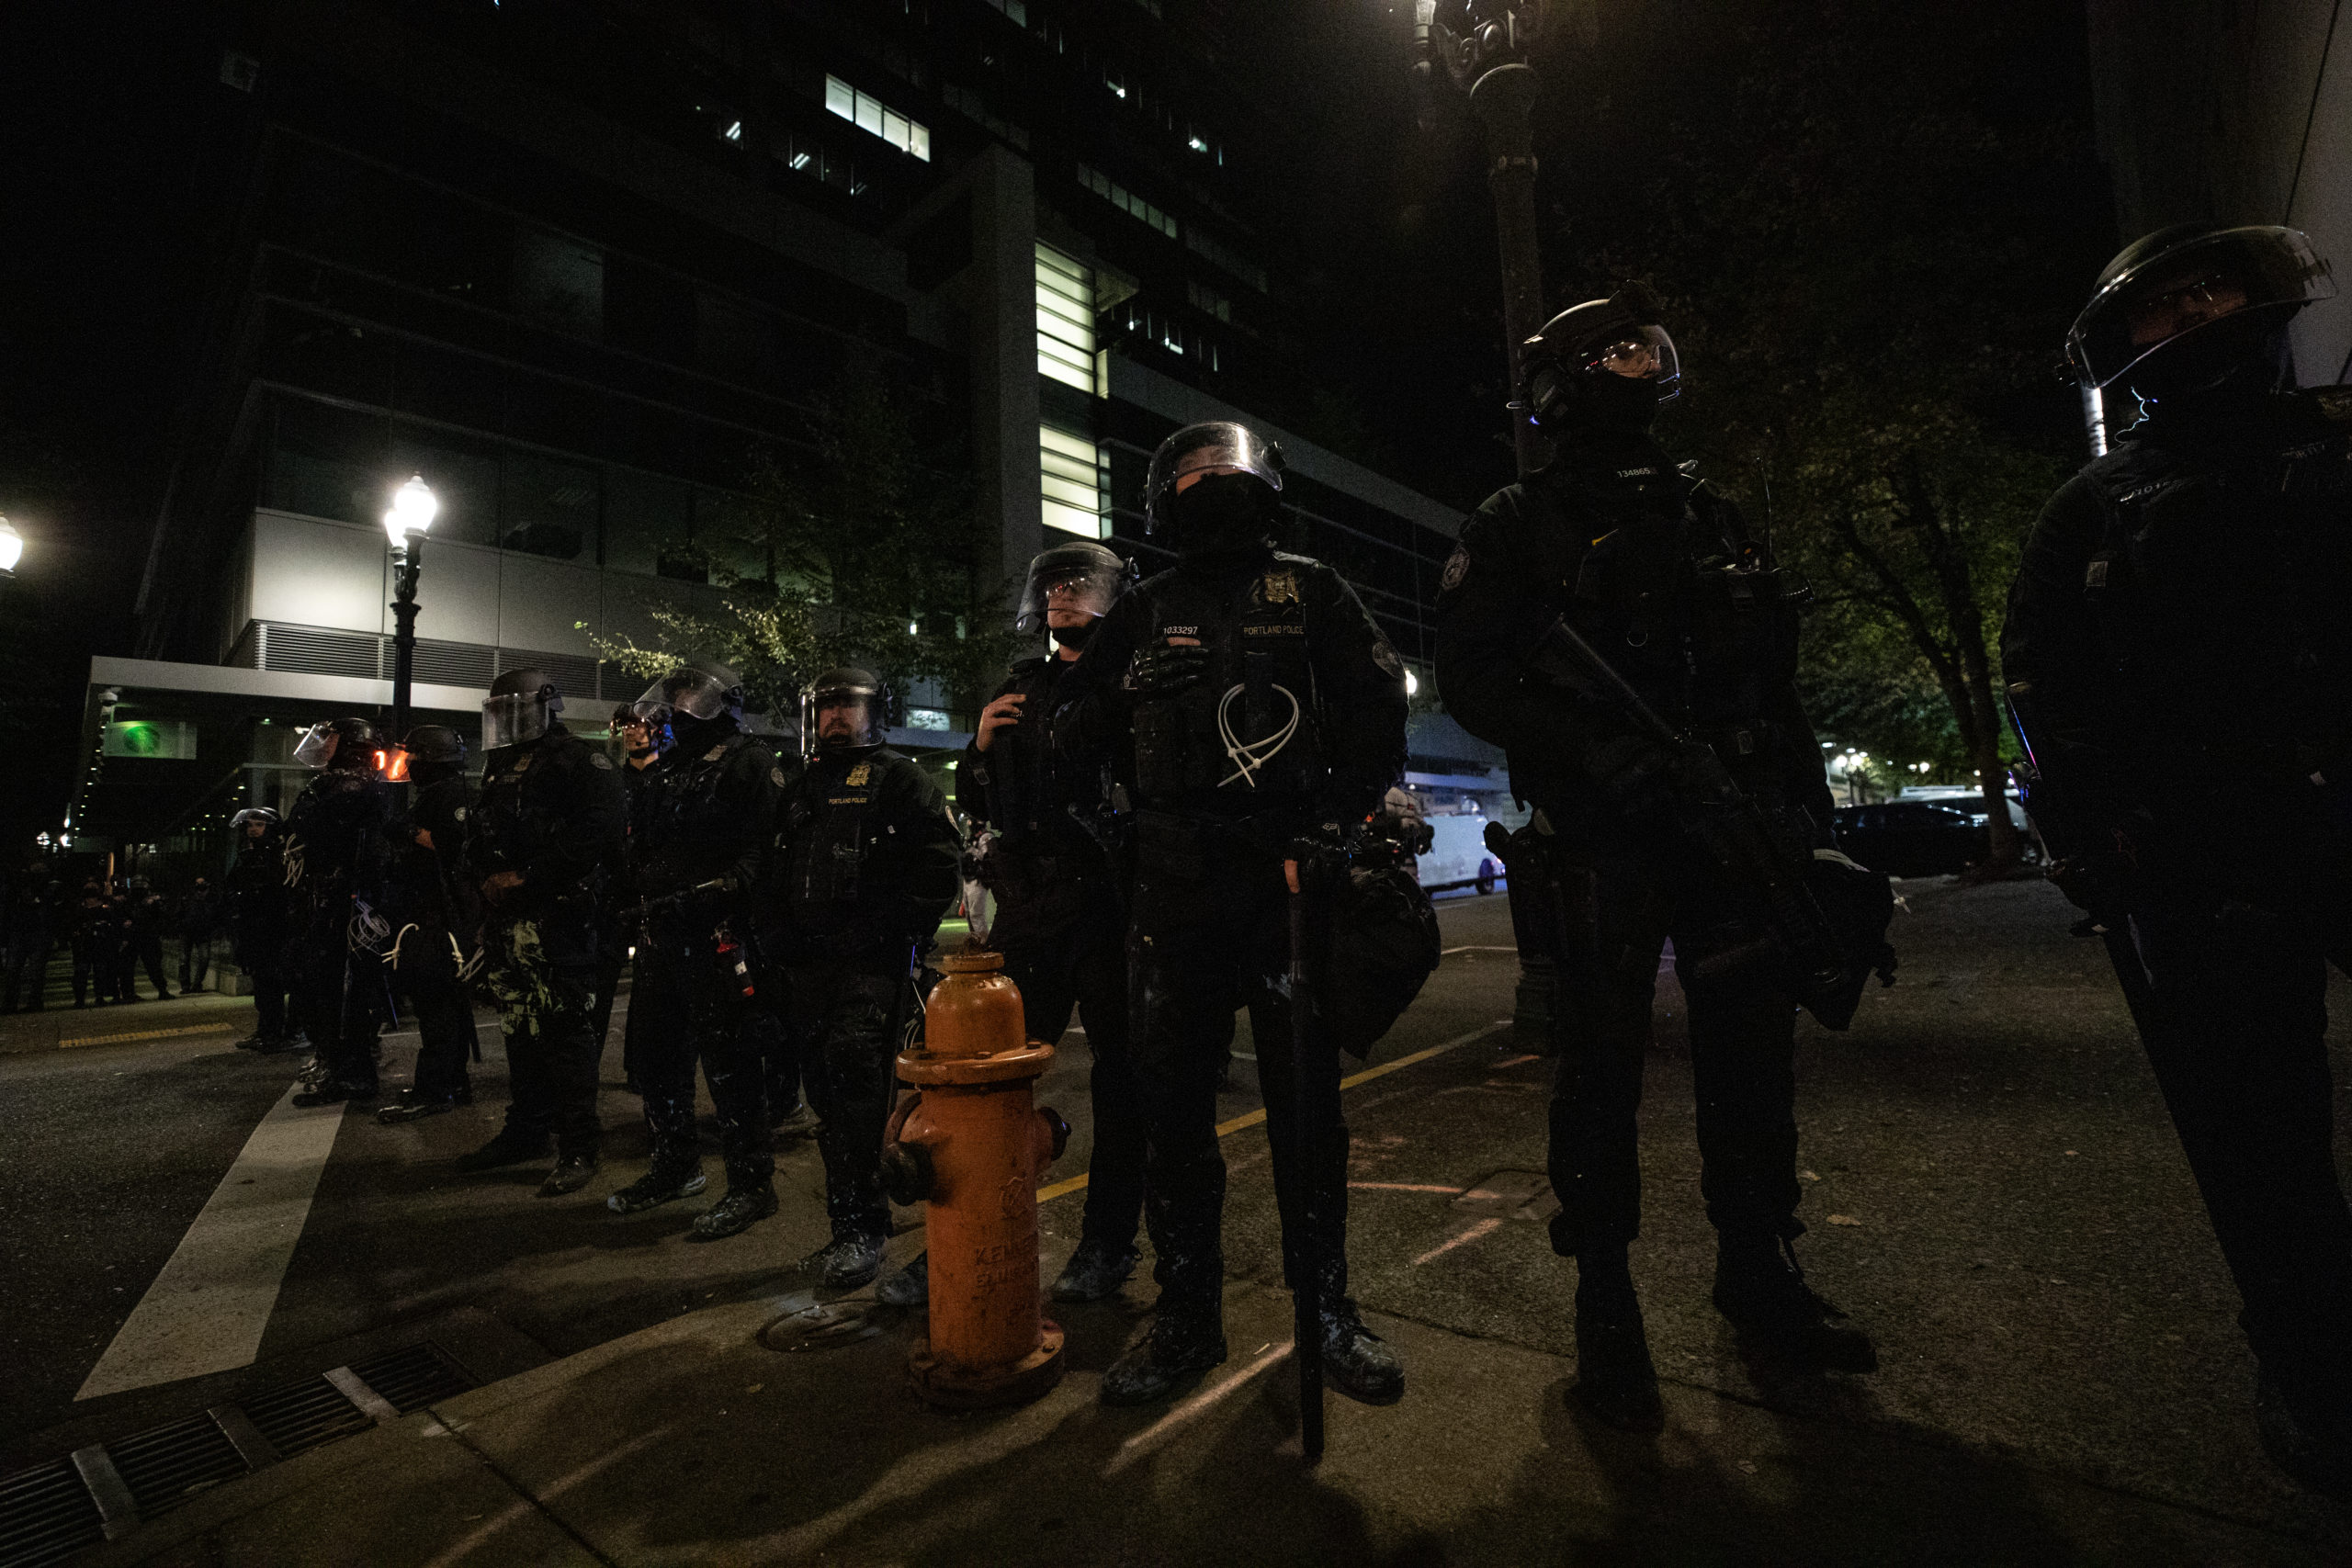 Police form a line outside the Portland Police Bureau in Portland, Oregon, on Sept. 27, 2020. (Photo: Kaylee Greenlee / DCNF)